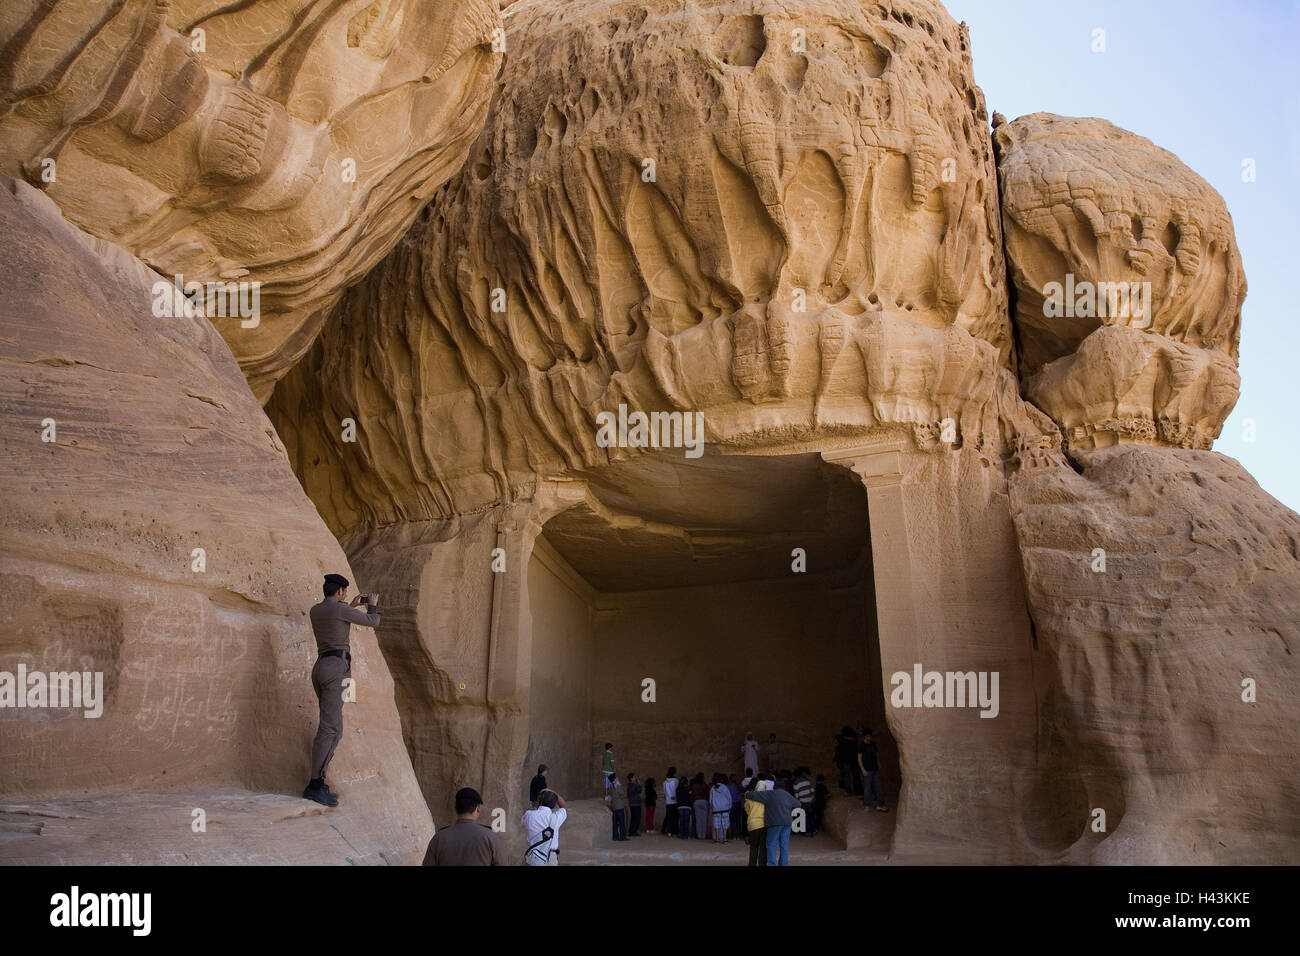 Saudi Arabia, province Tabuk, Madain Saleh, cliff face ...